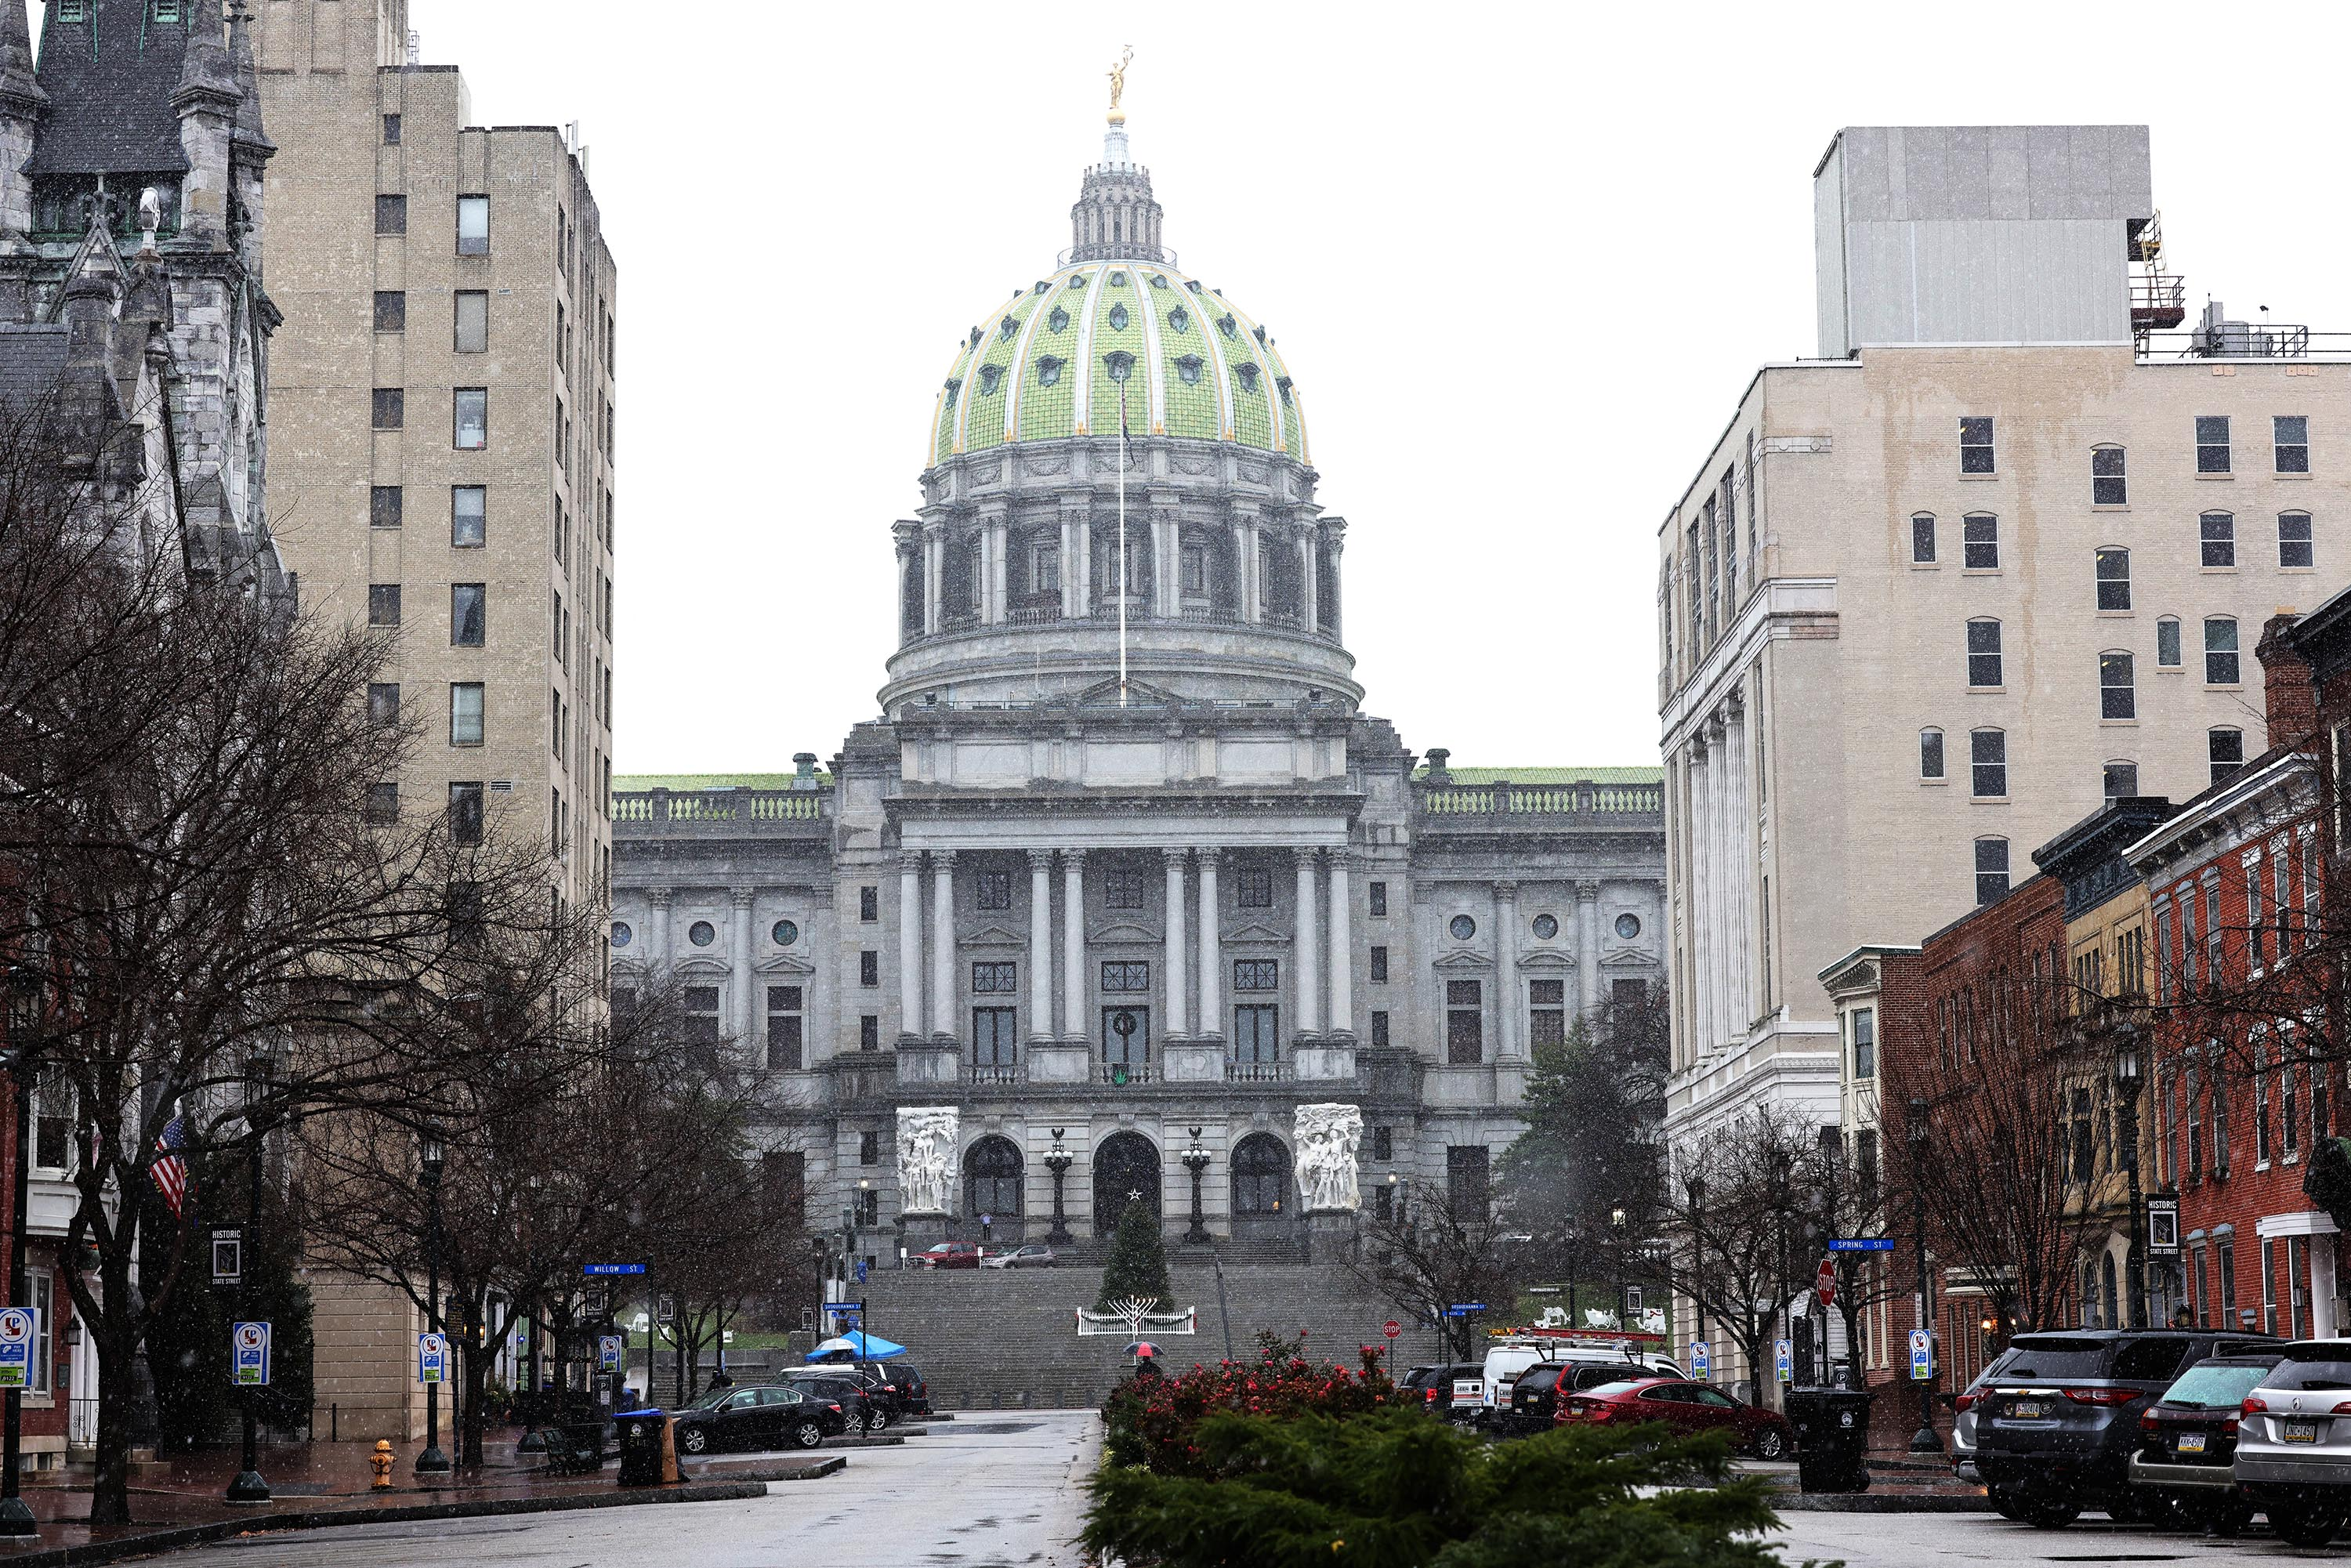 The Pennsylvania State Capitol is seen on December 14, 2020 in Harrisburg, Pennsylvania.